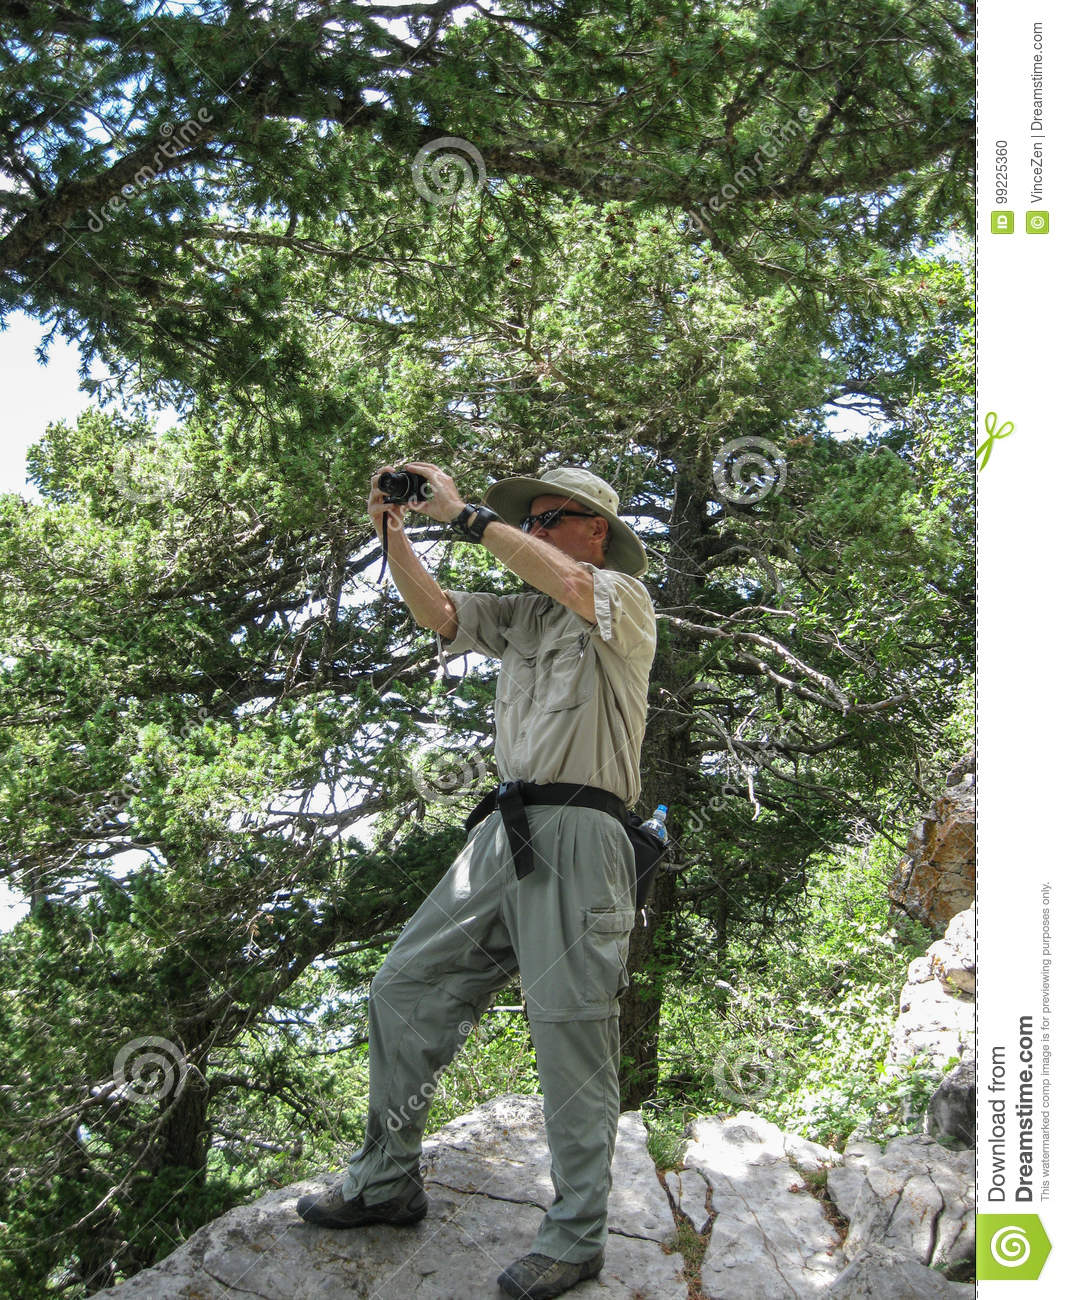 Photographer capturing the landscape from a high overlook in the Sandia Mountains wilderness area.